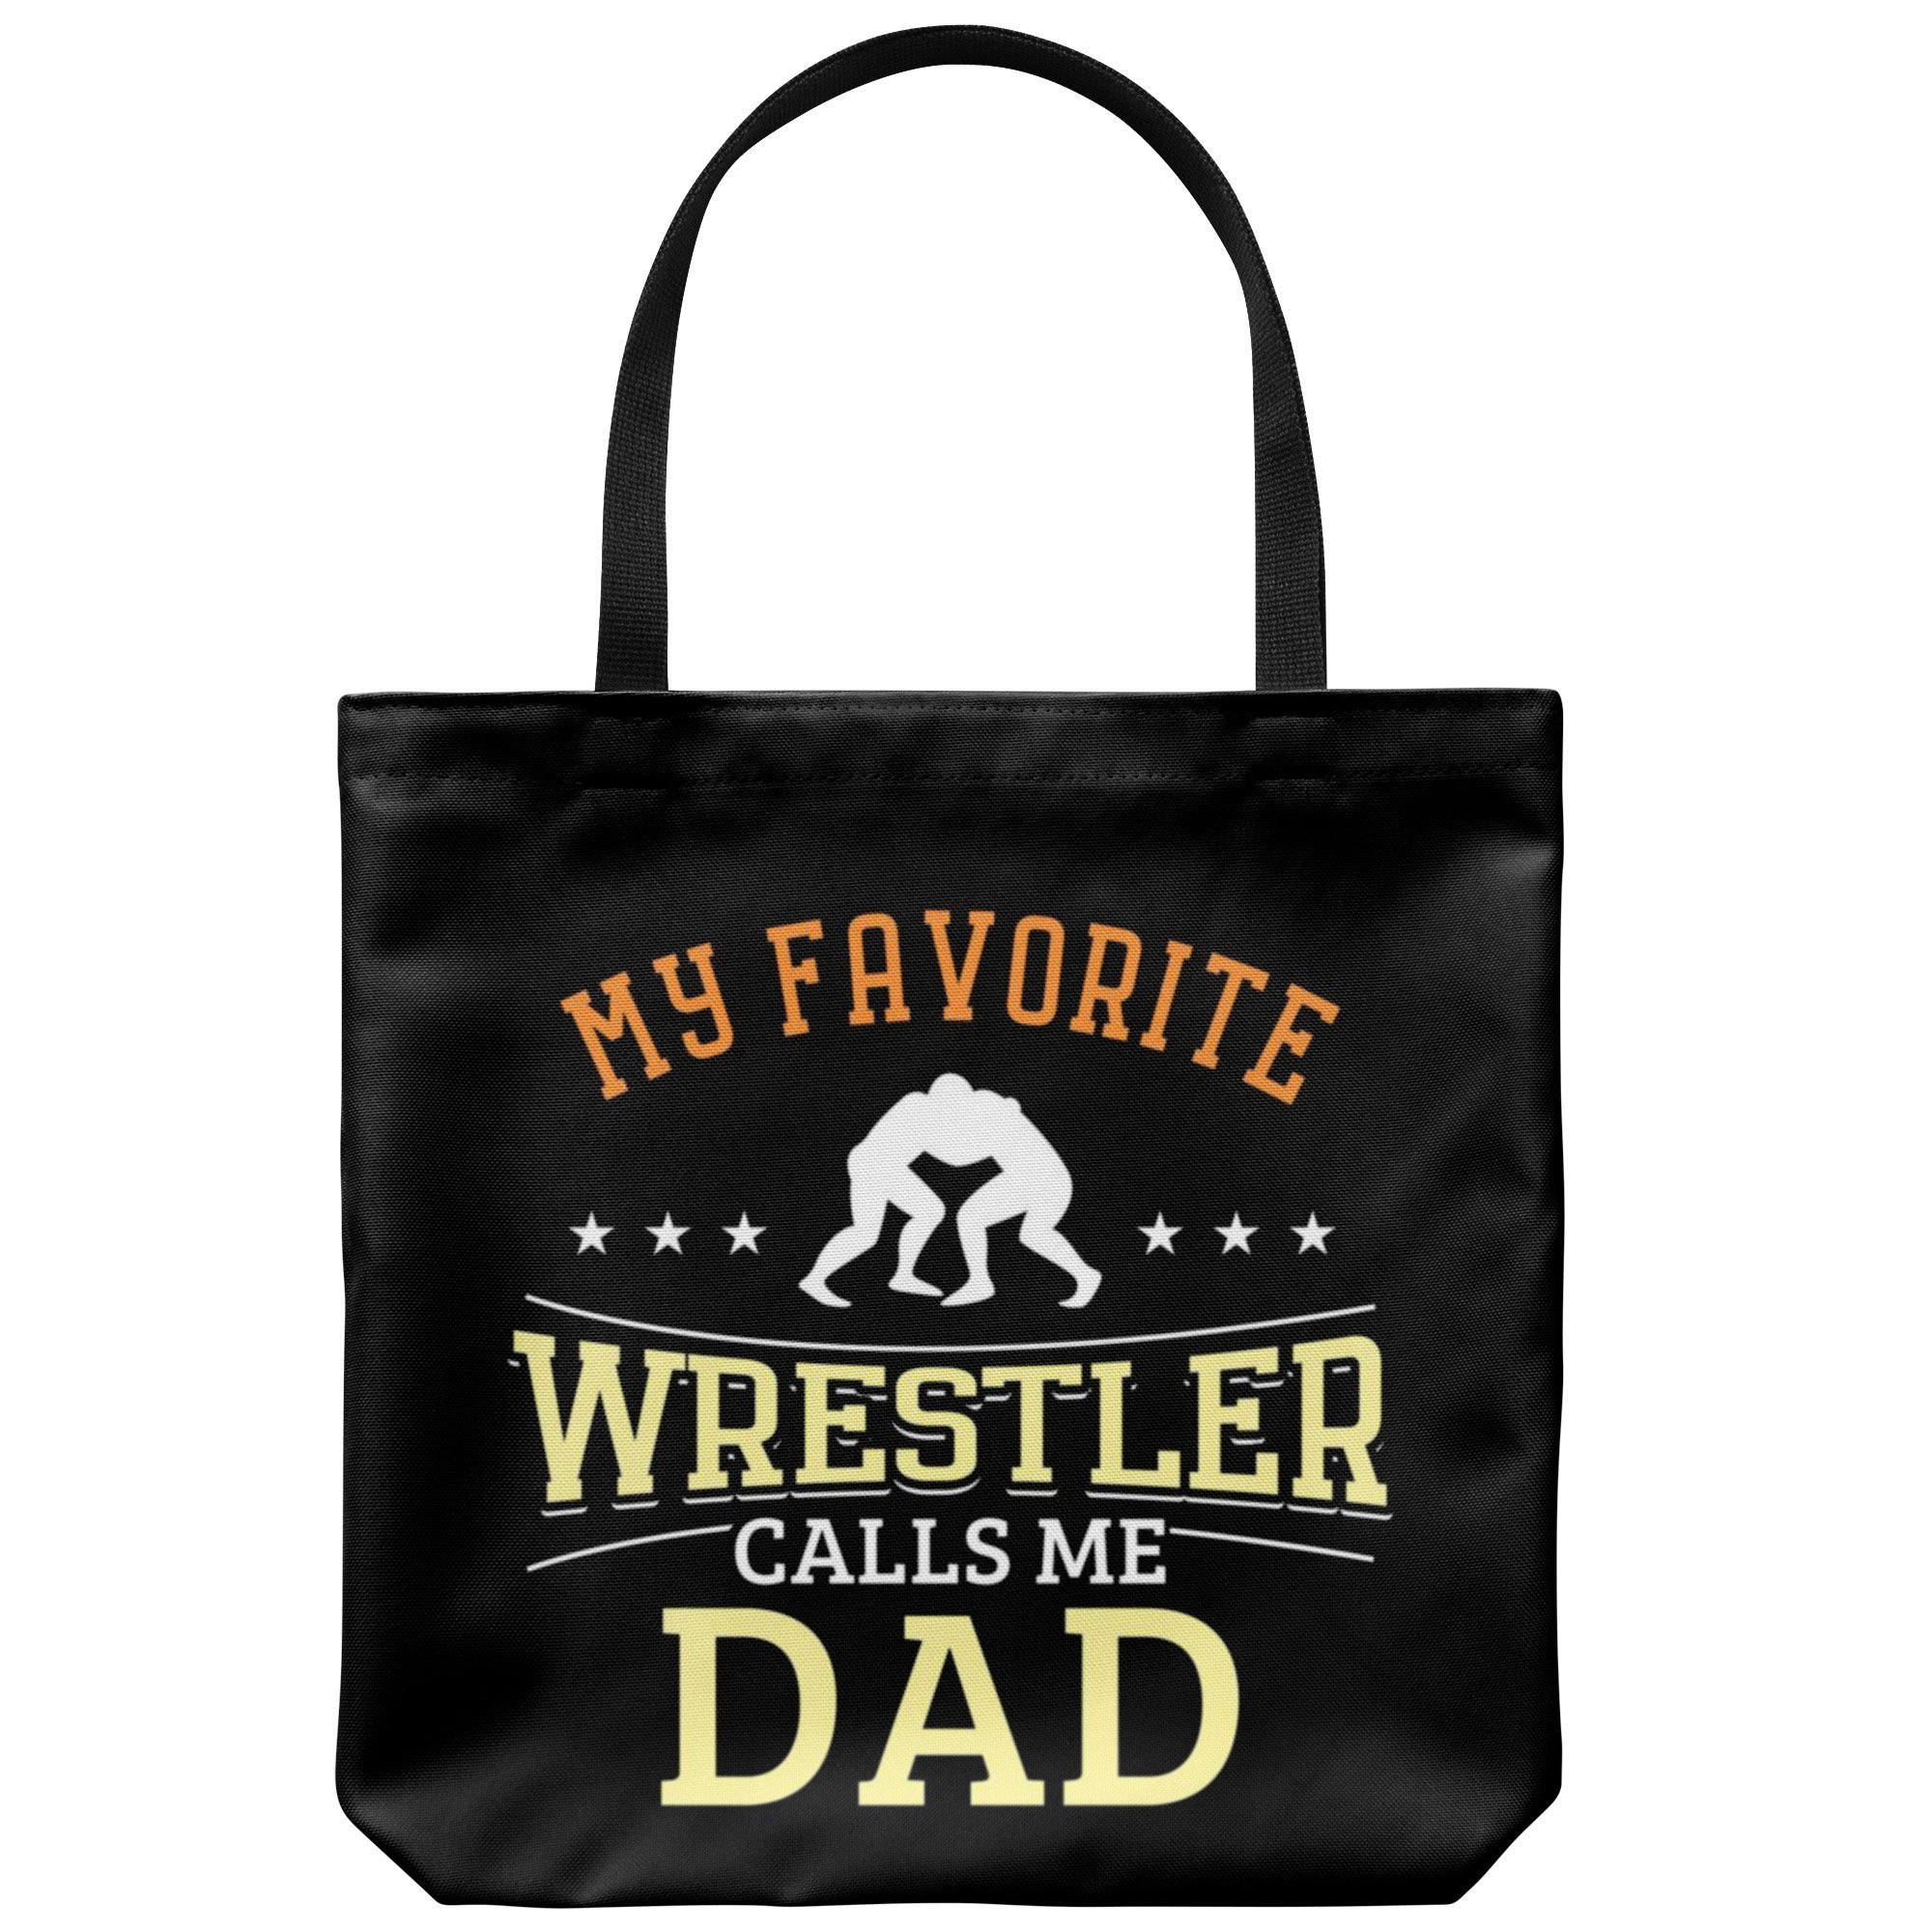 Wrestling Dad Canvas Tote Bag Funny Father's Day Wrestler Gifts Lover - Favorite